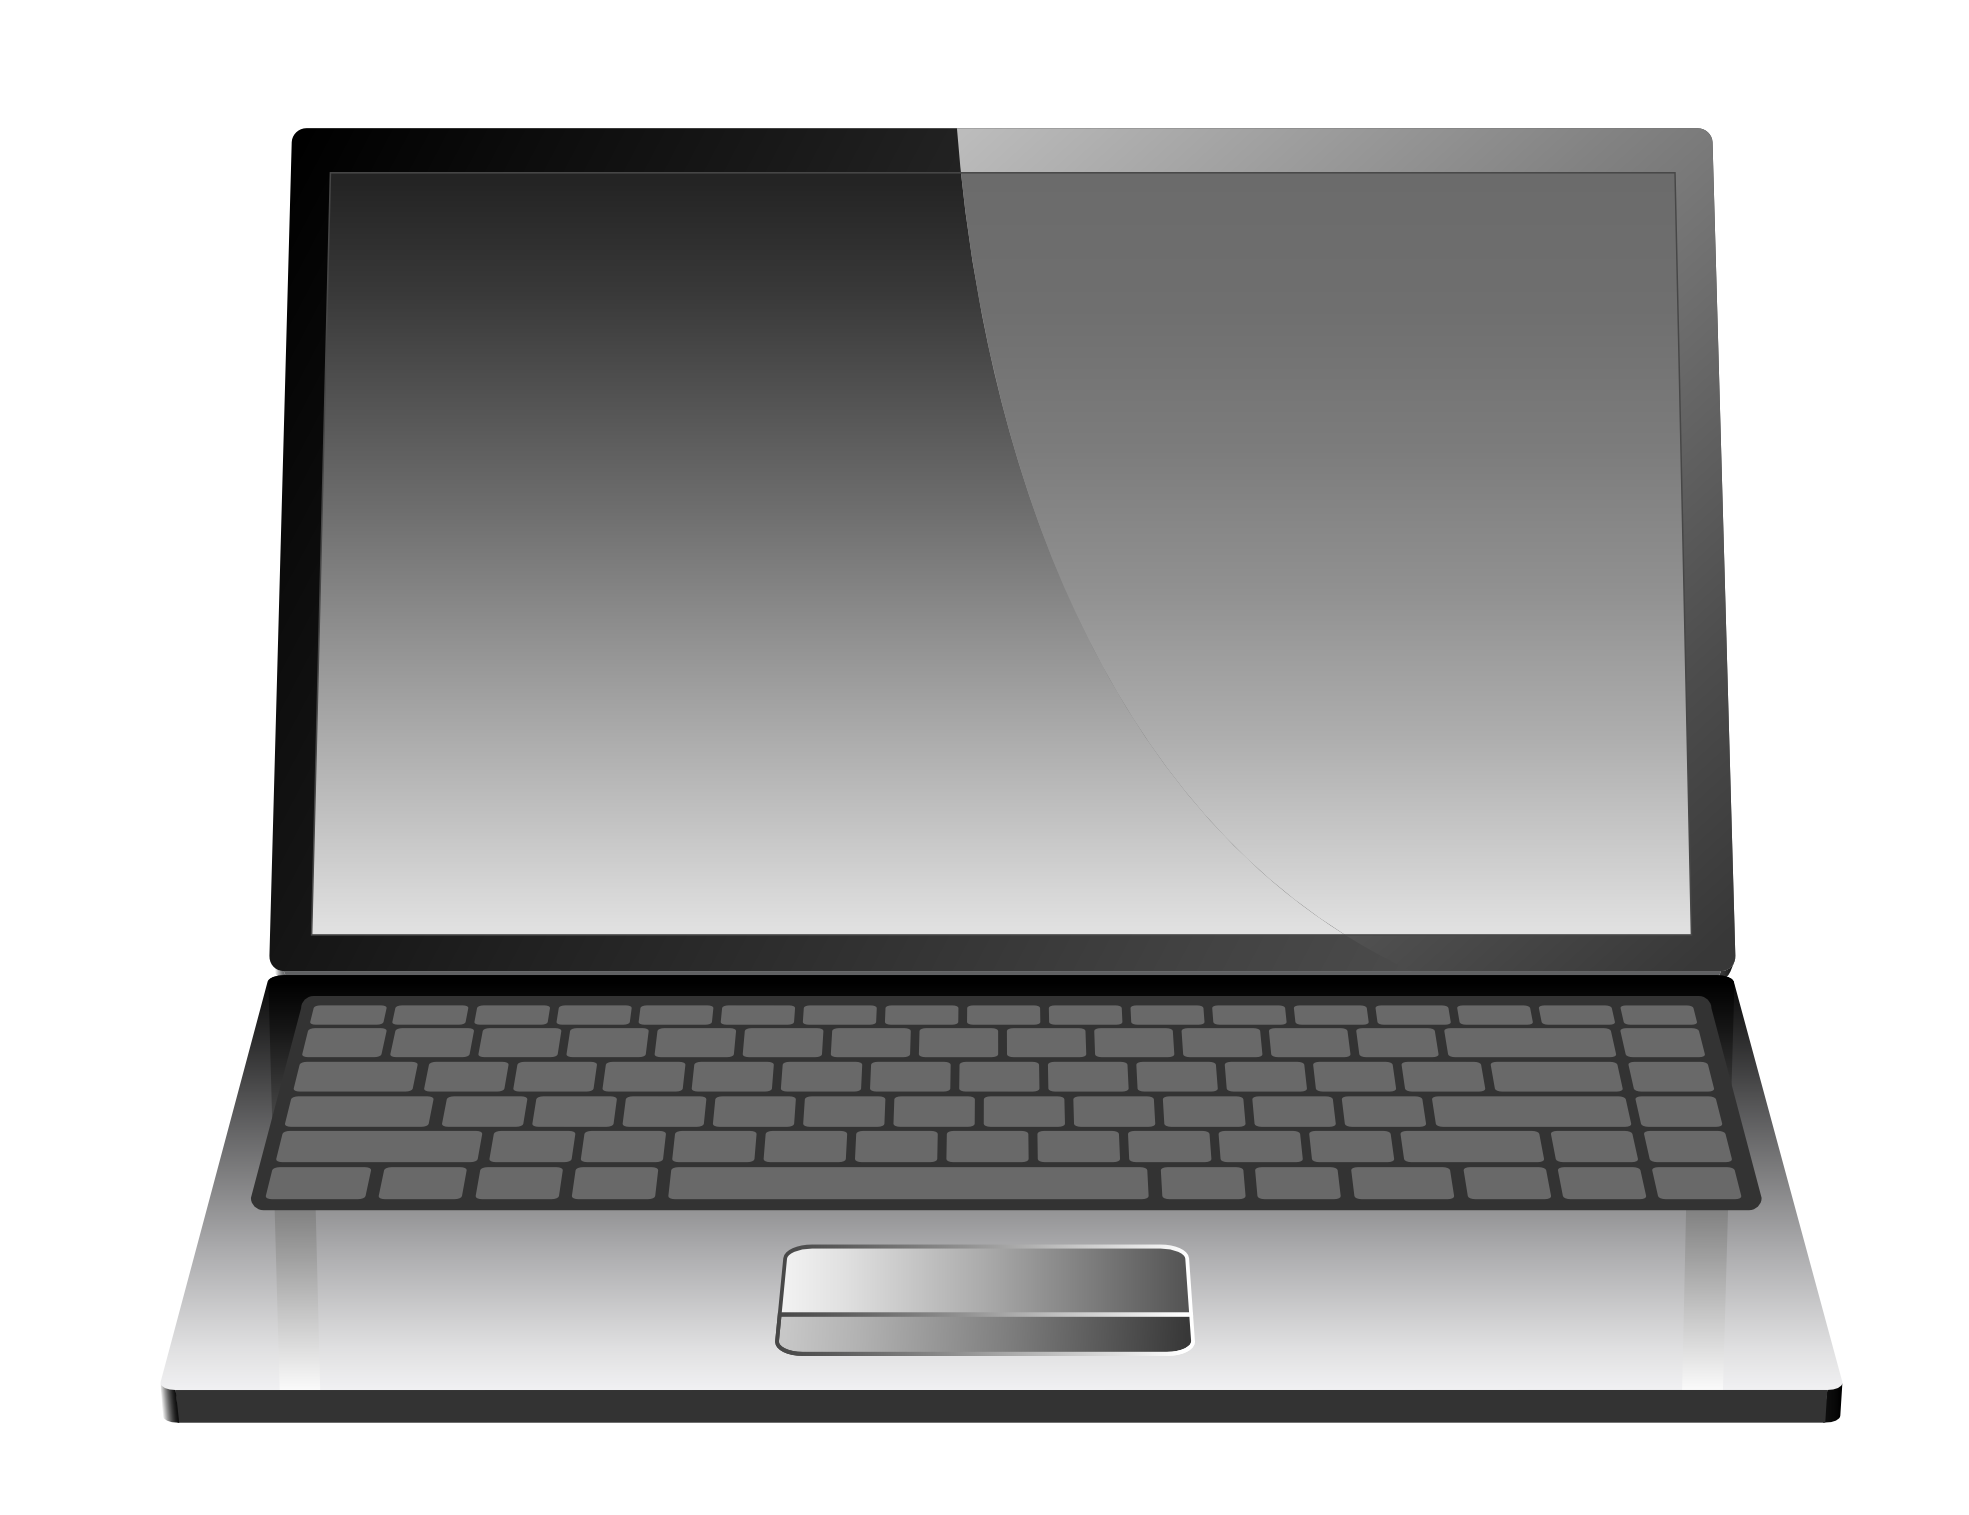 Animasi Laptop Png 4 PNG Image